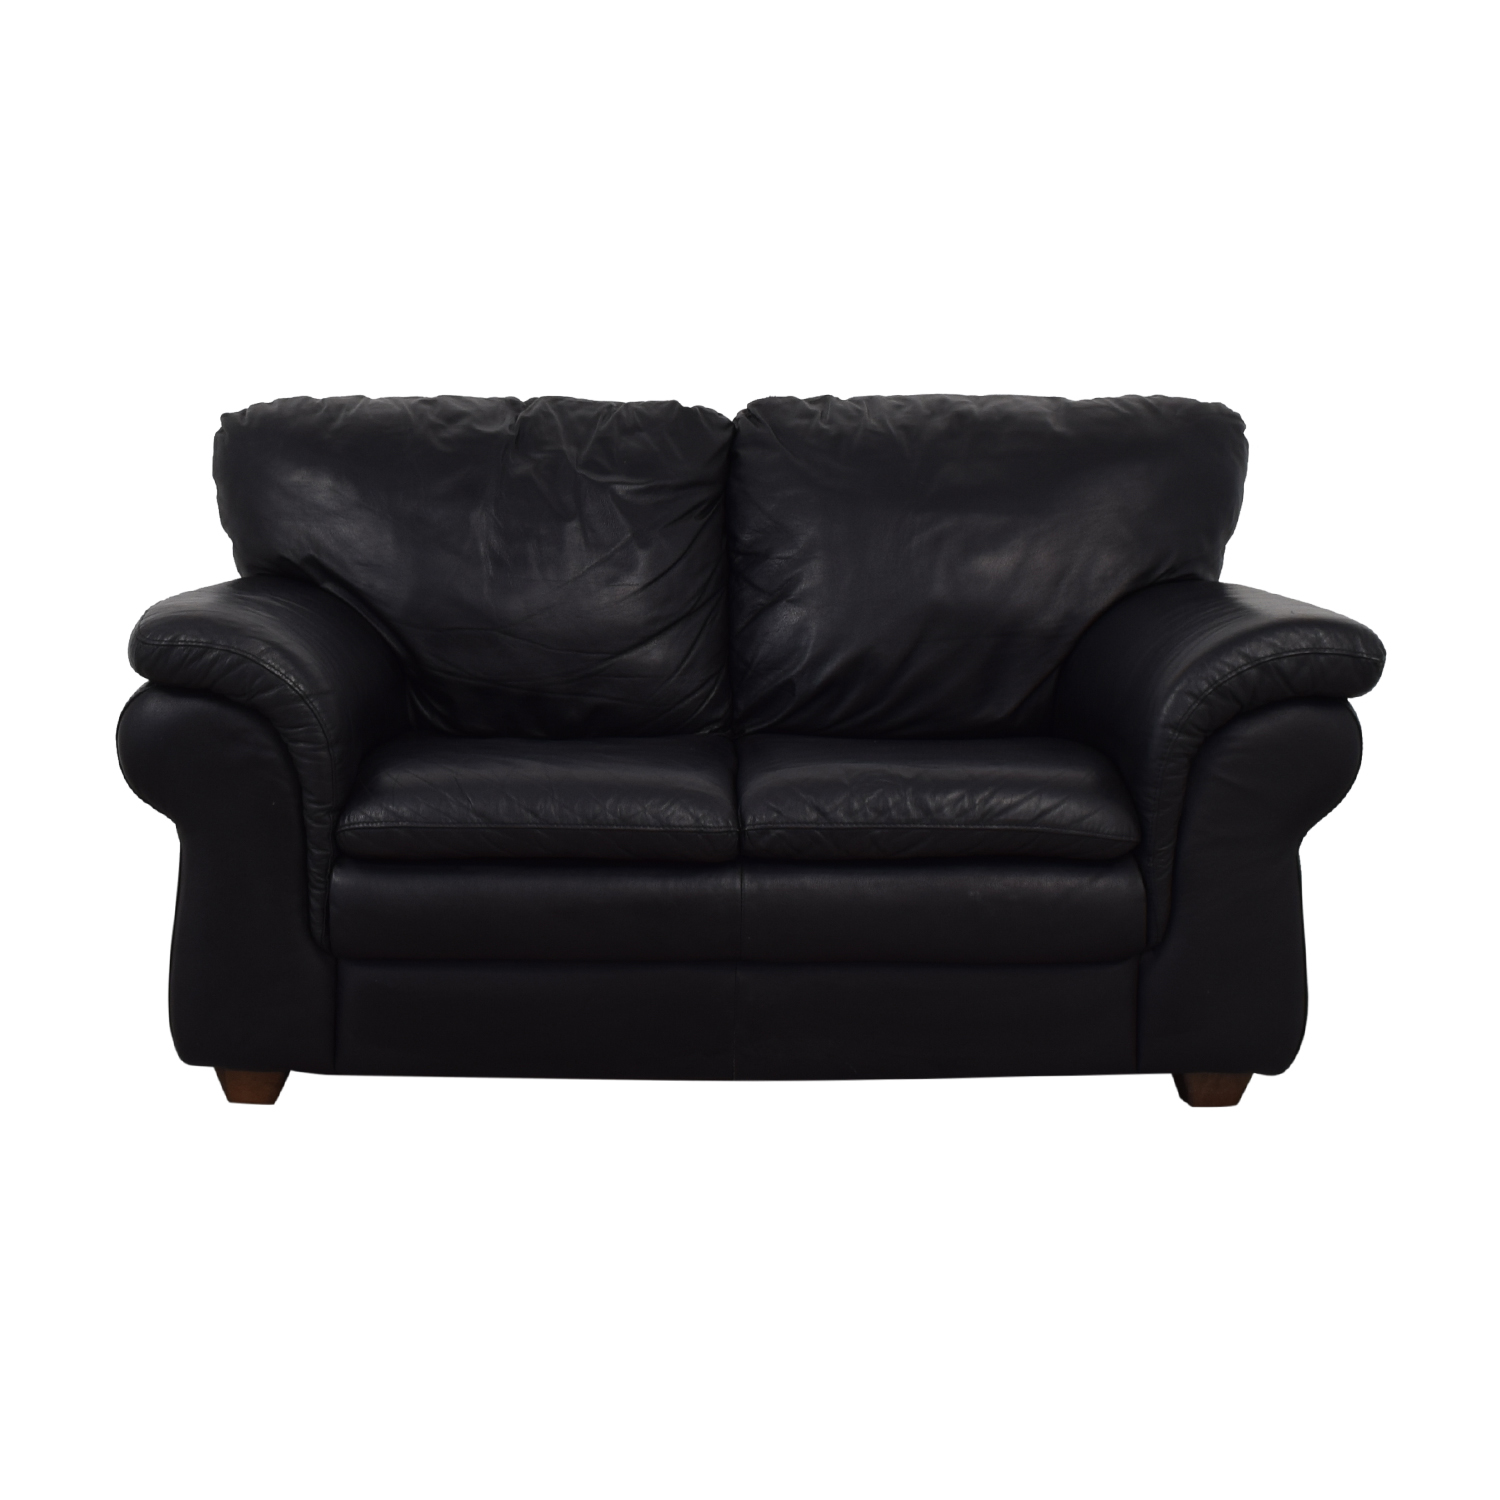 Bloomingdale's Bloomingdale's Black Two-Cushion Loveseat coupon